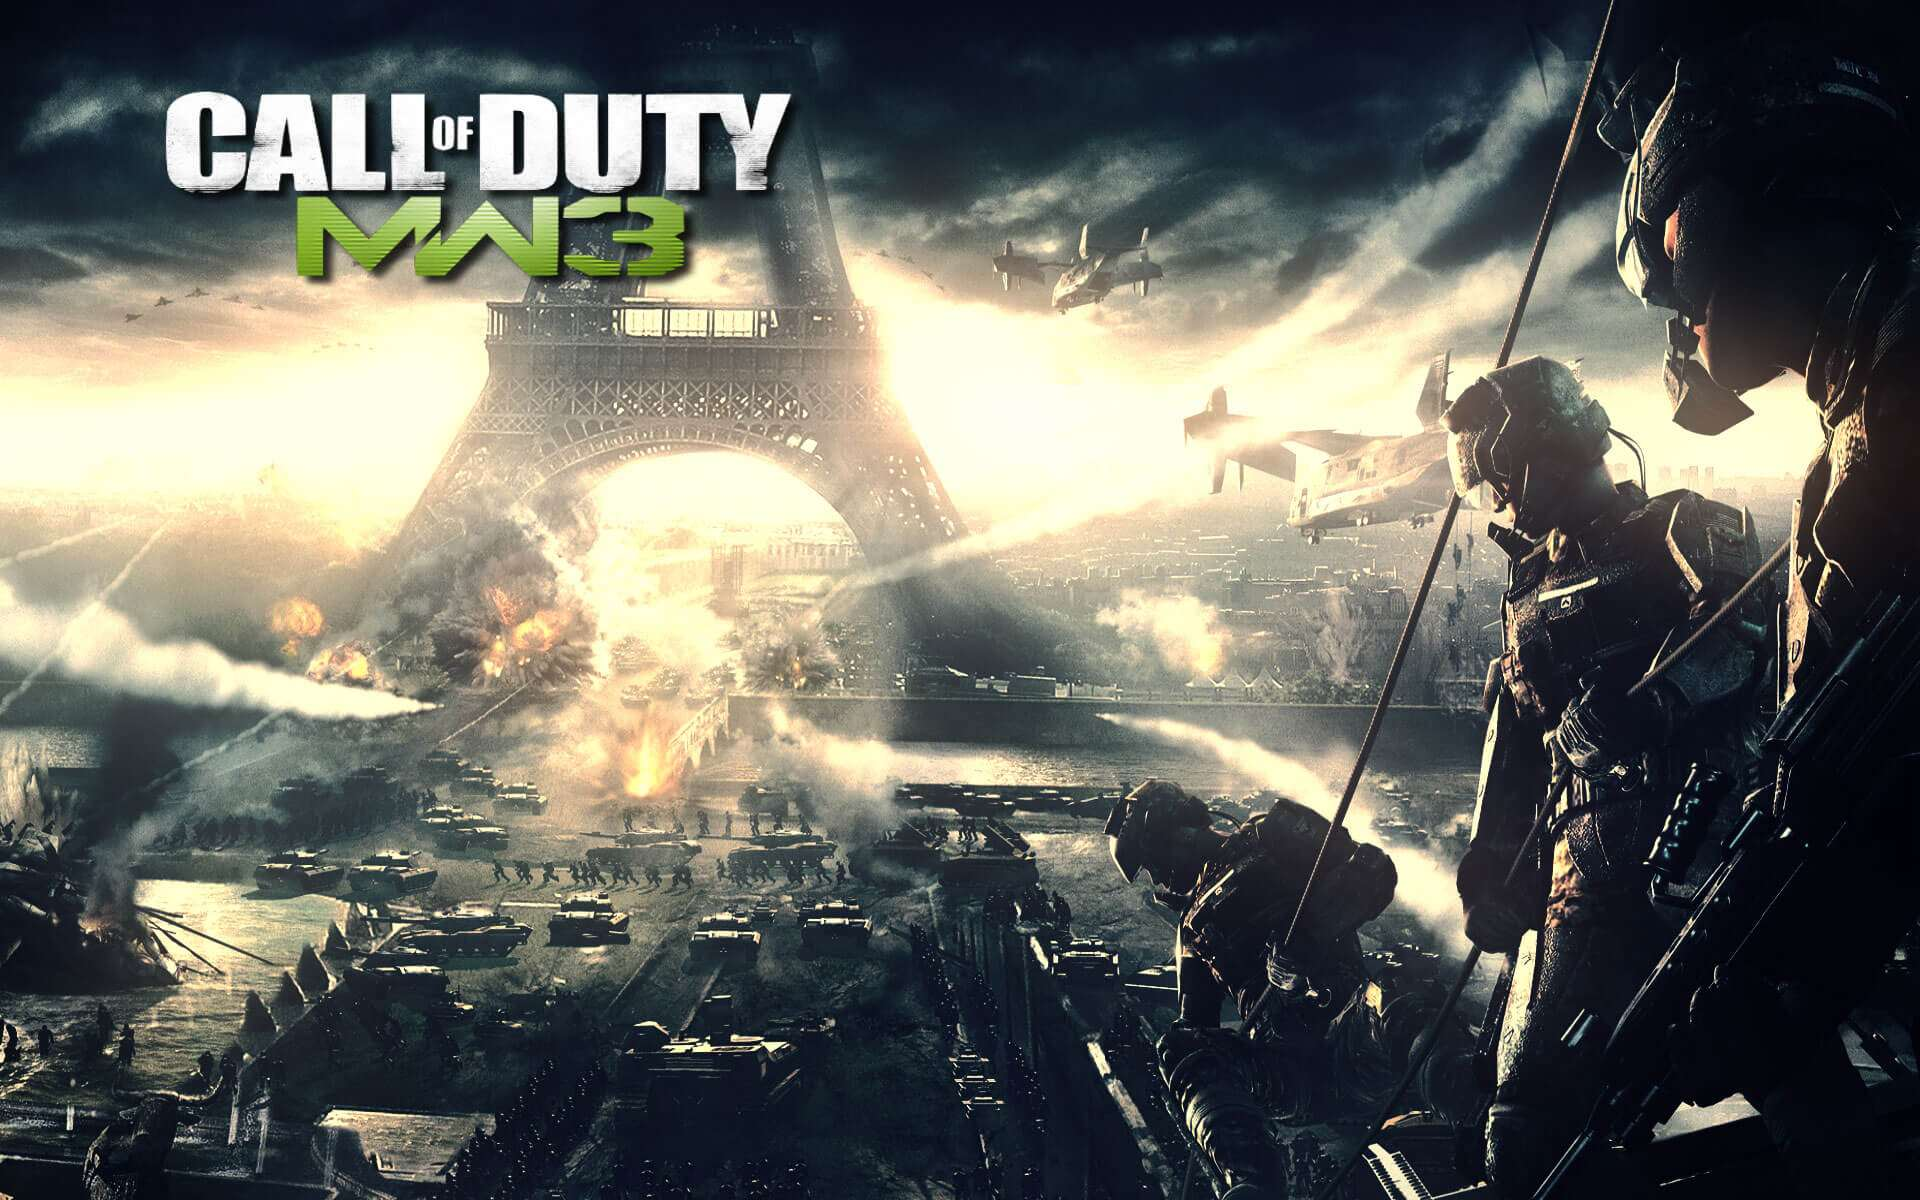 Call of Duty Modern Warfare 3 Full PC Game Free Download